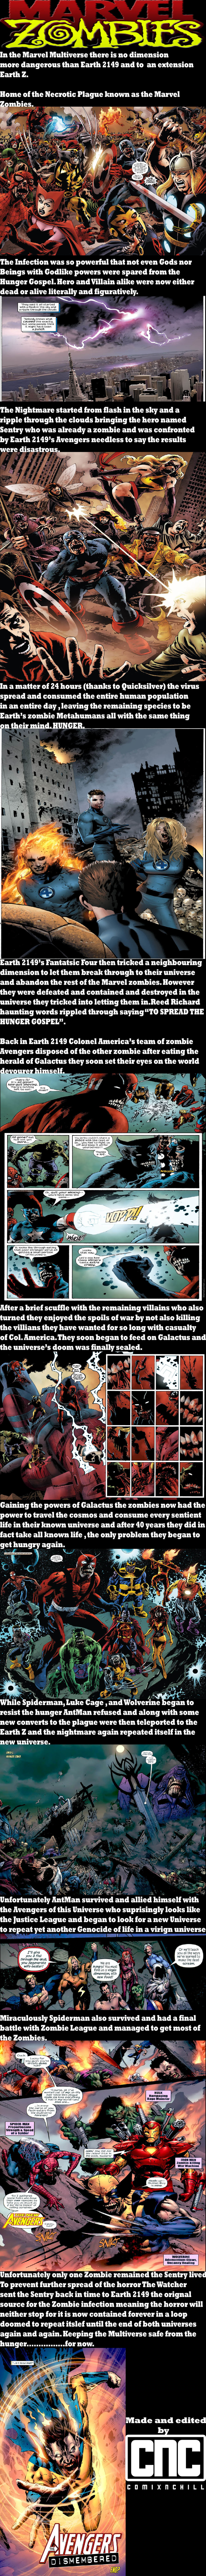 Halloween Special 2 : The Marvel Zombies